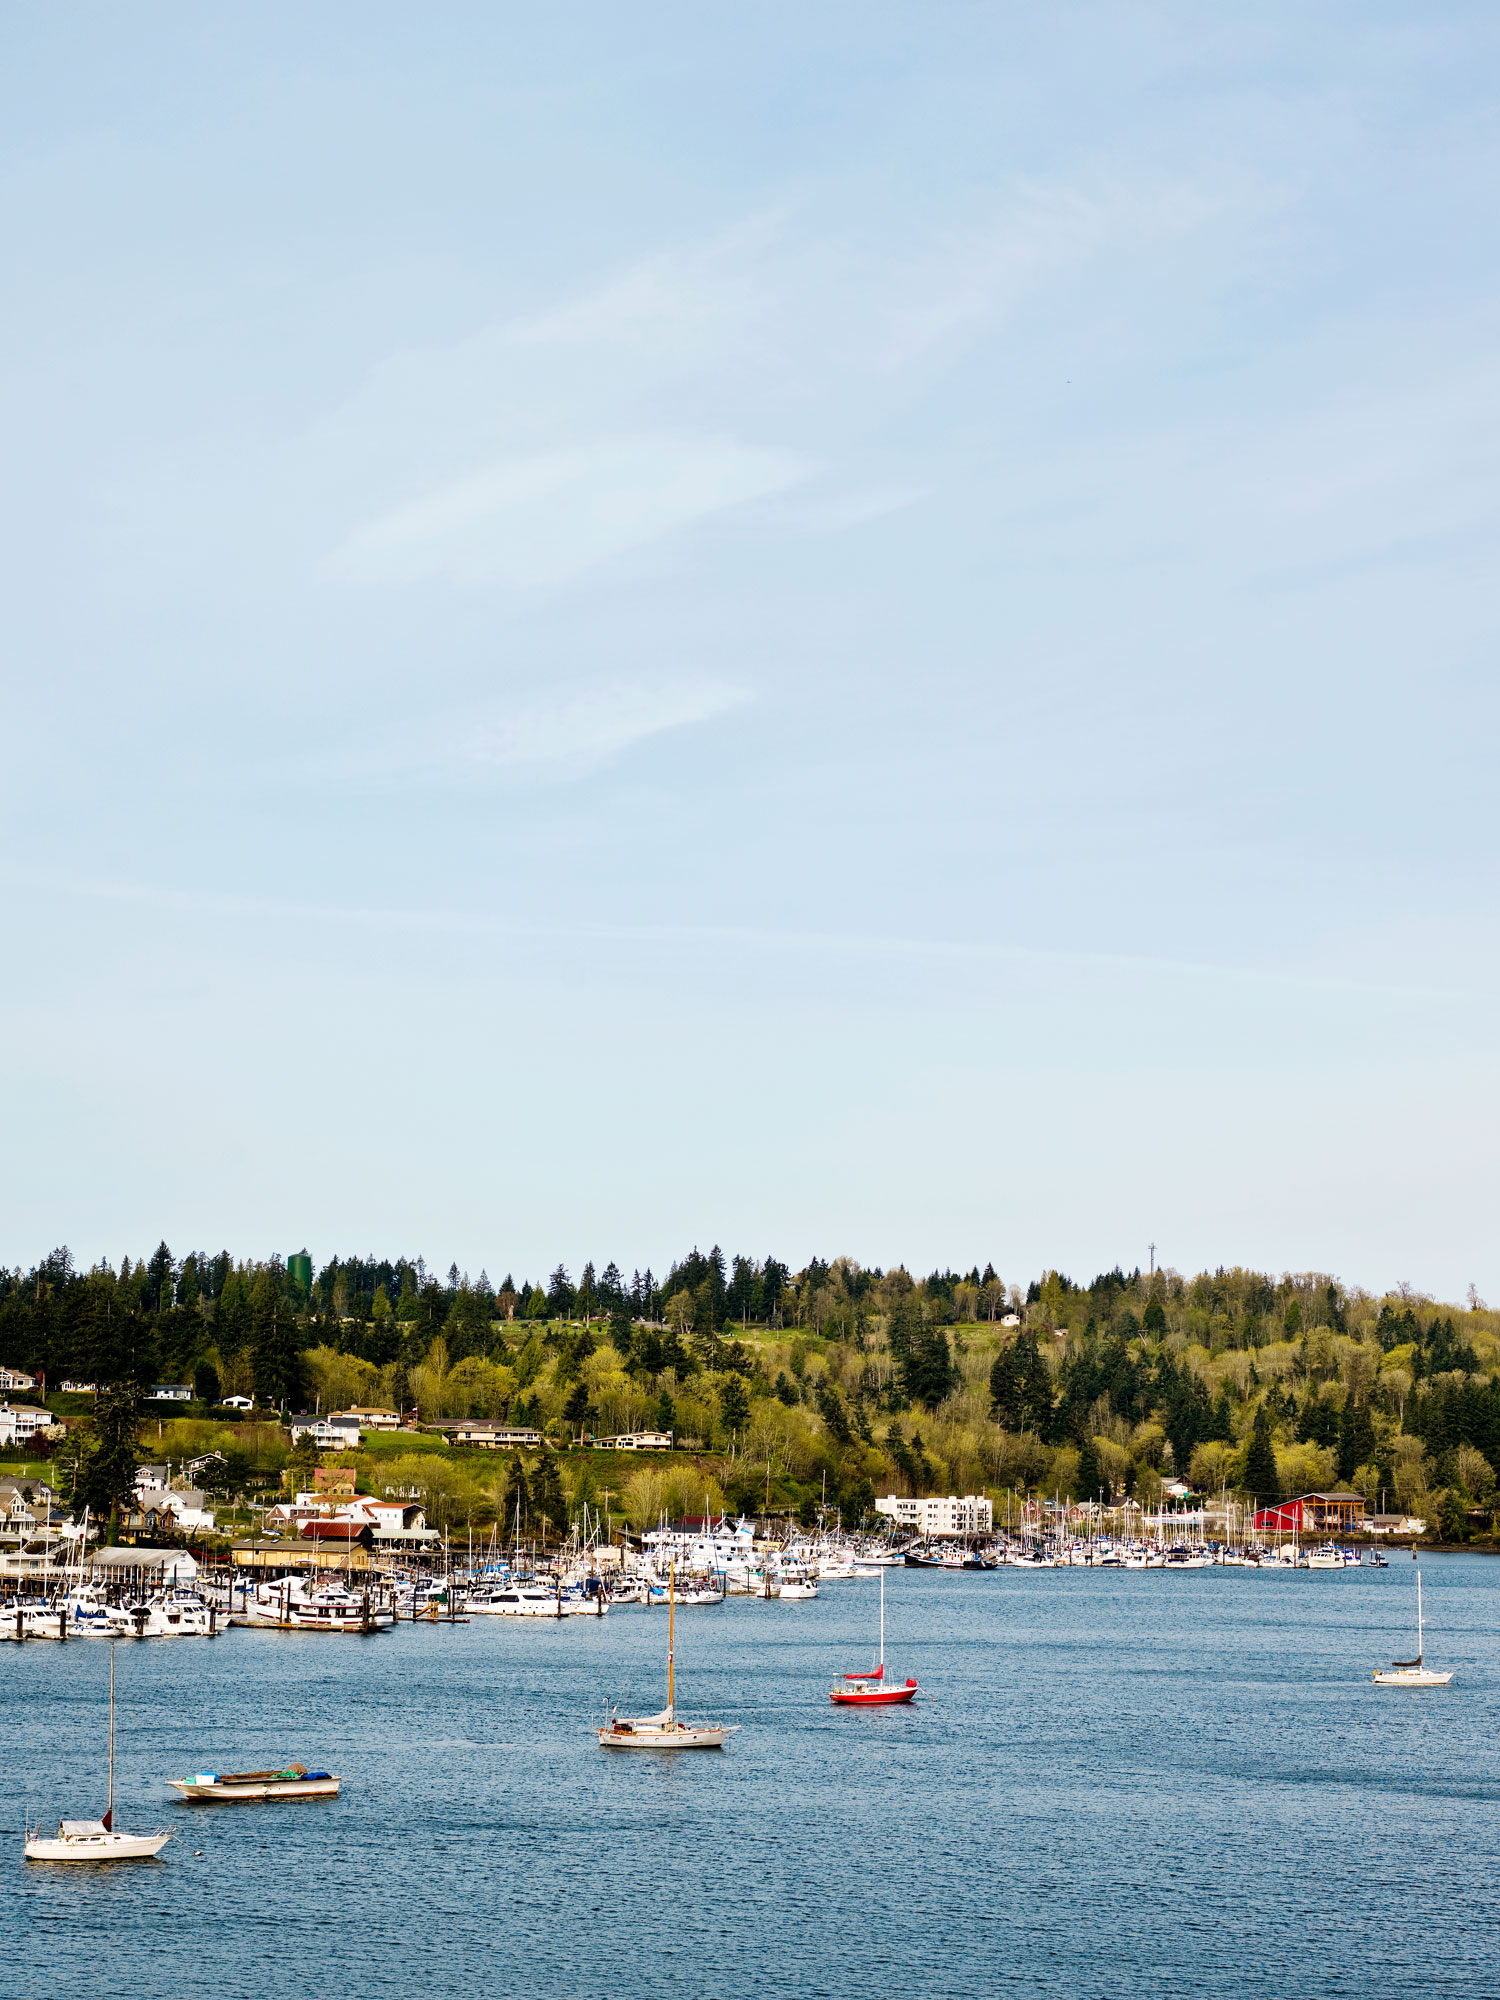 A Day in Gig Harbor